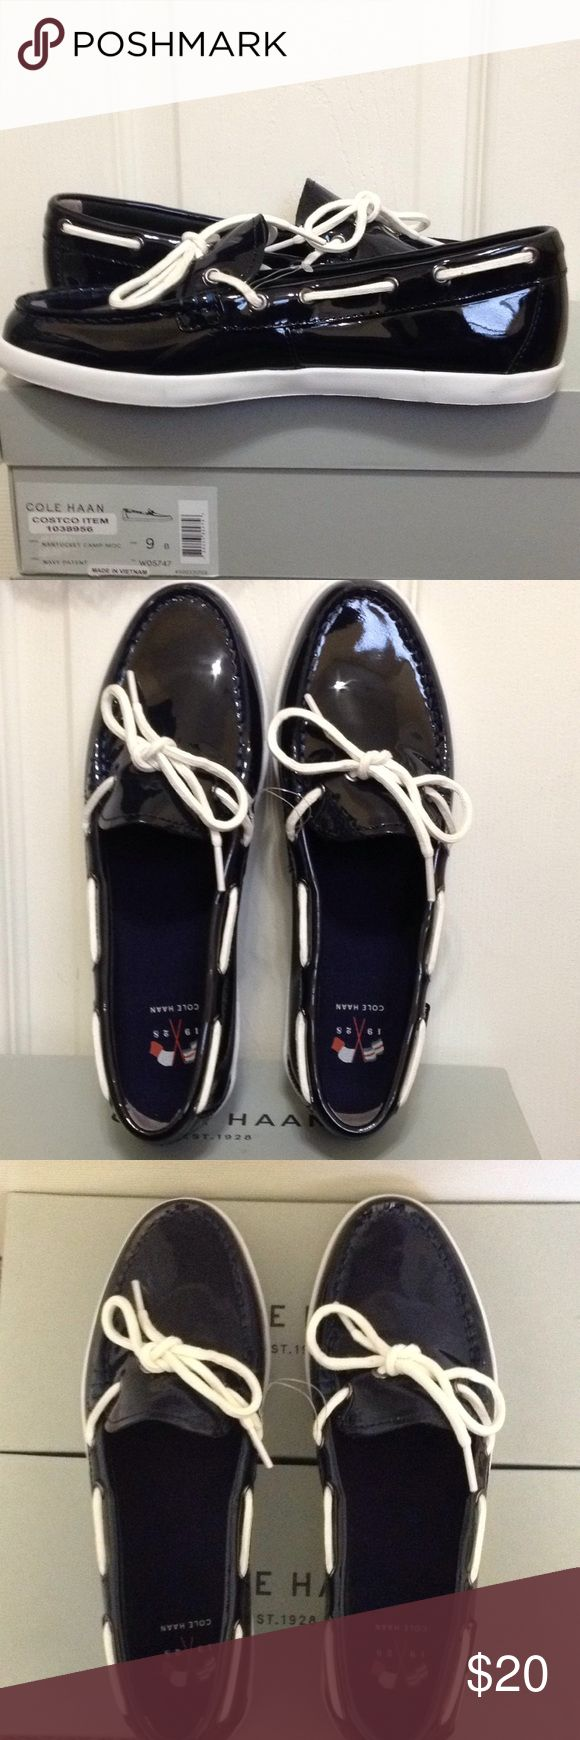 Cole Haan NAntucket Camp Moc Navy Patent Shoes 9B New Cole Haan Nantucket Camp Moc Women's Shoes, Size 9B, Color Navy Patent Cole Haan Shoes Flats & Loafers